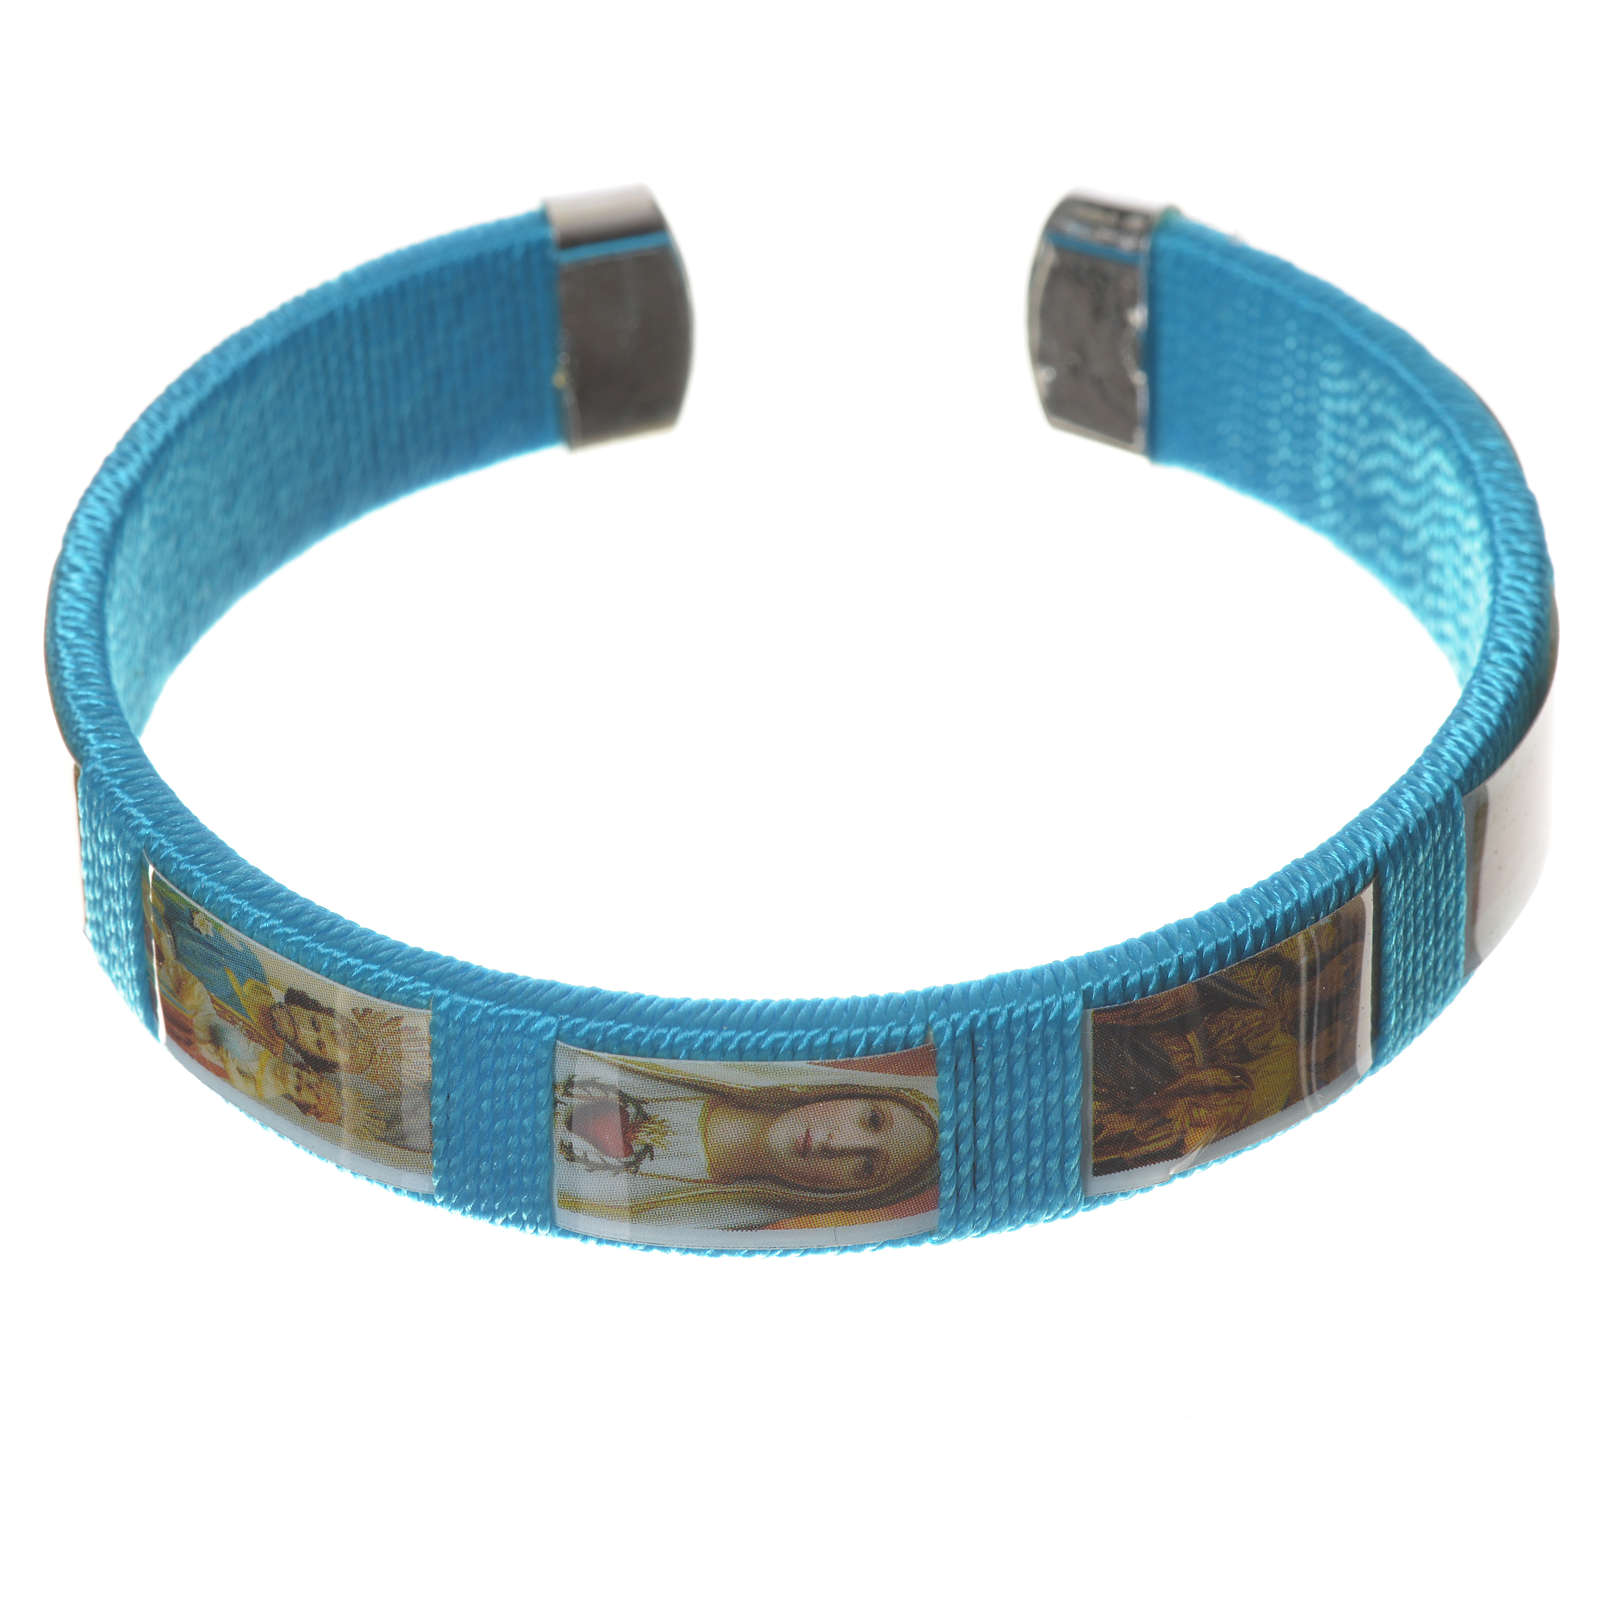 Bracelet in fabric with images of Our Lady 4